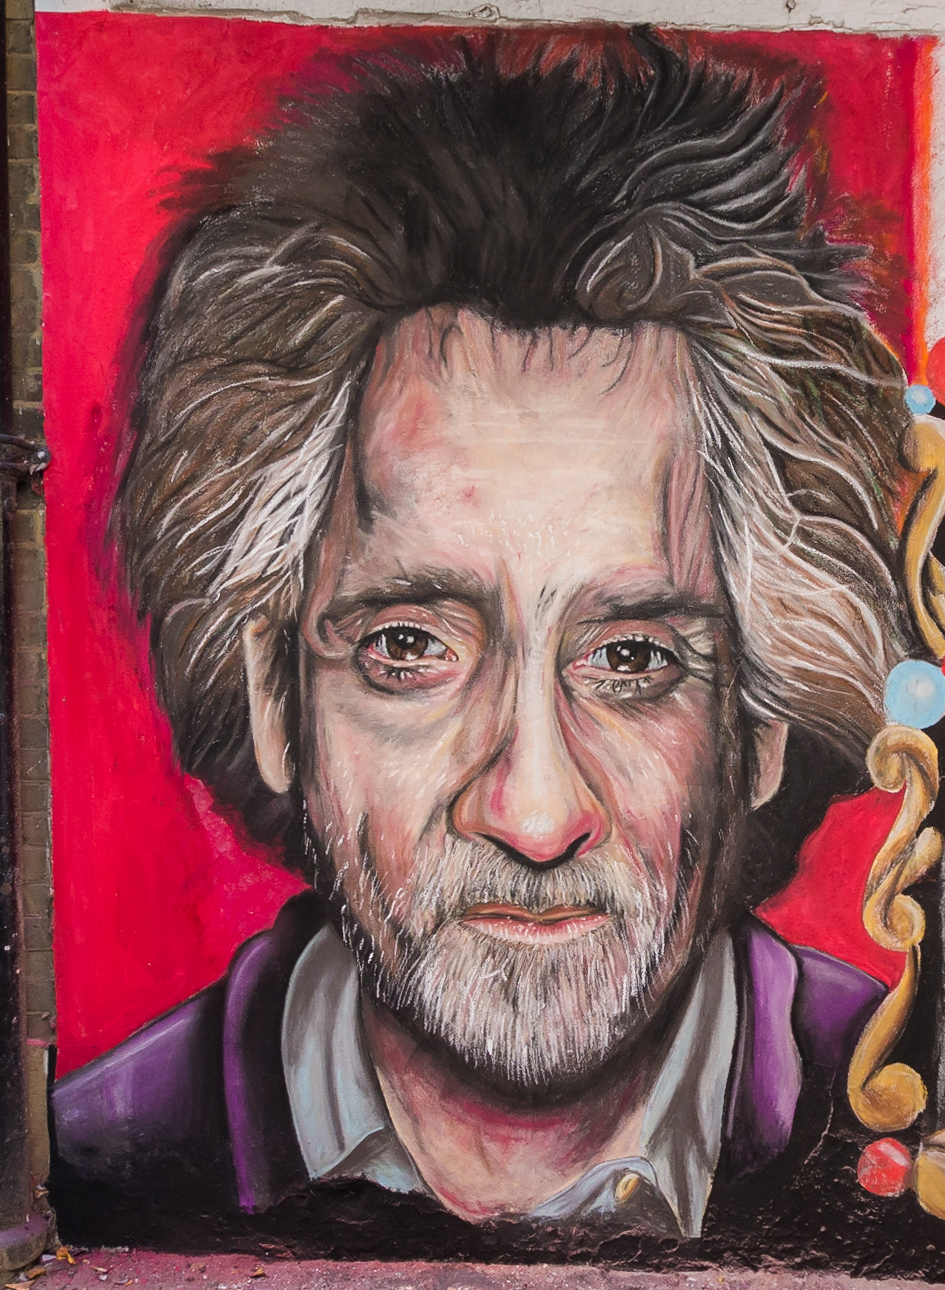 To finish of the mural we decided to add an image of Tim Burton himself. This piece is over 8 foot tall and adds a nice finish to 3 years of work.